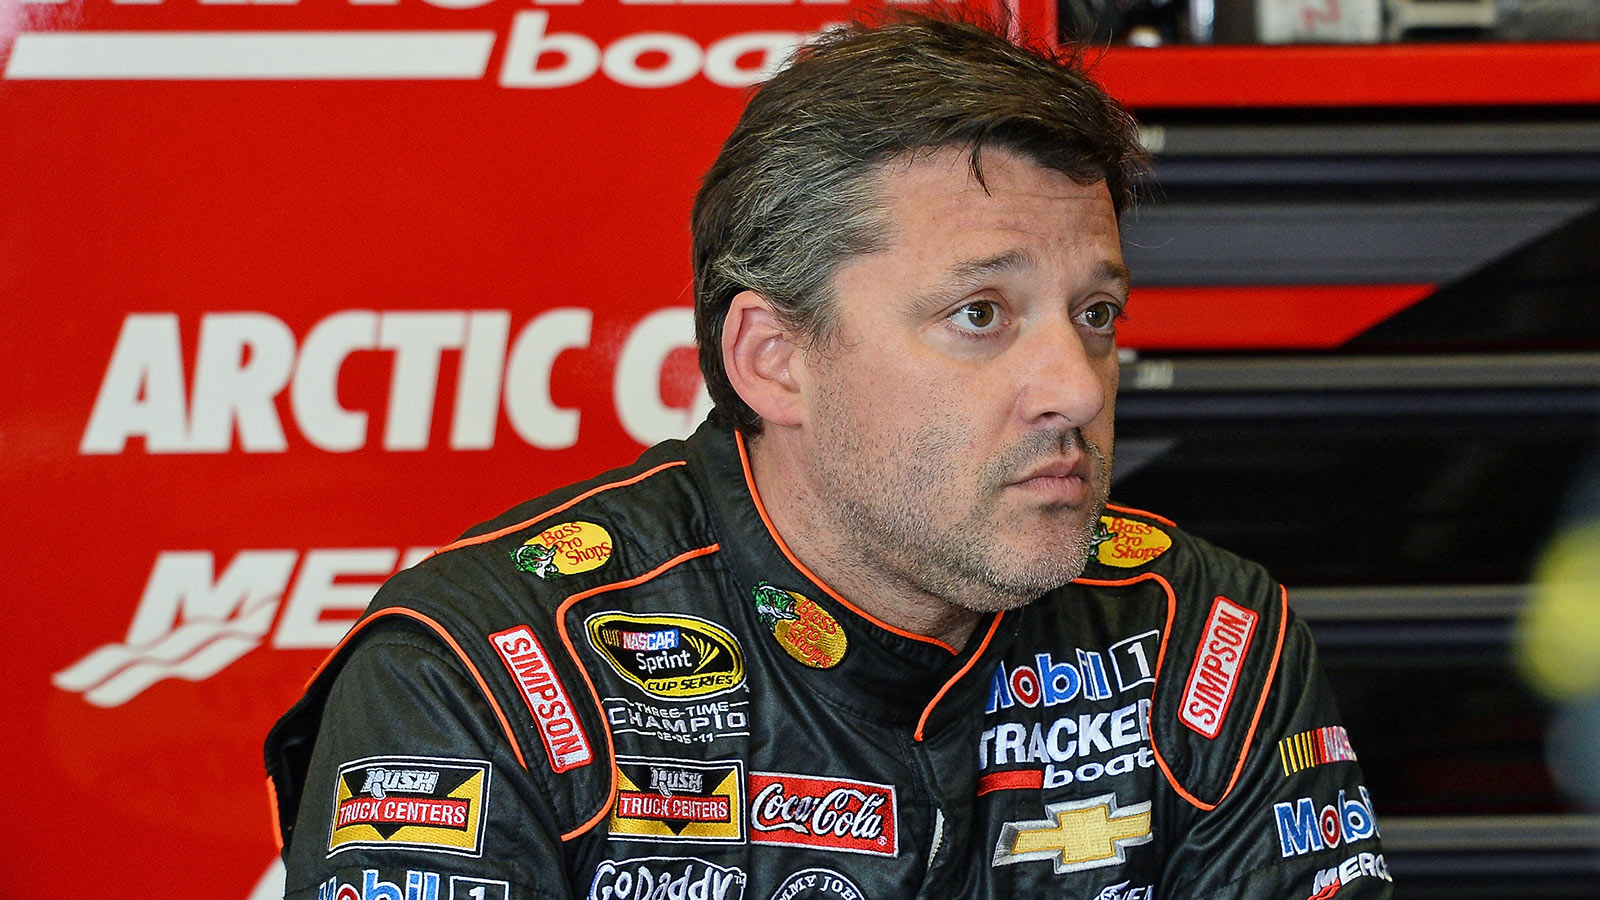 Tony Stewart Returns to NASCAR, But Not Before Another Series of Fines